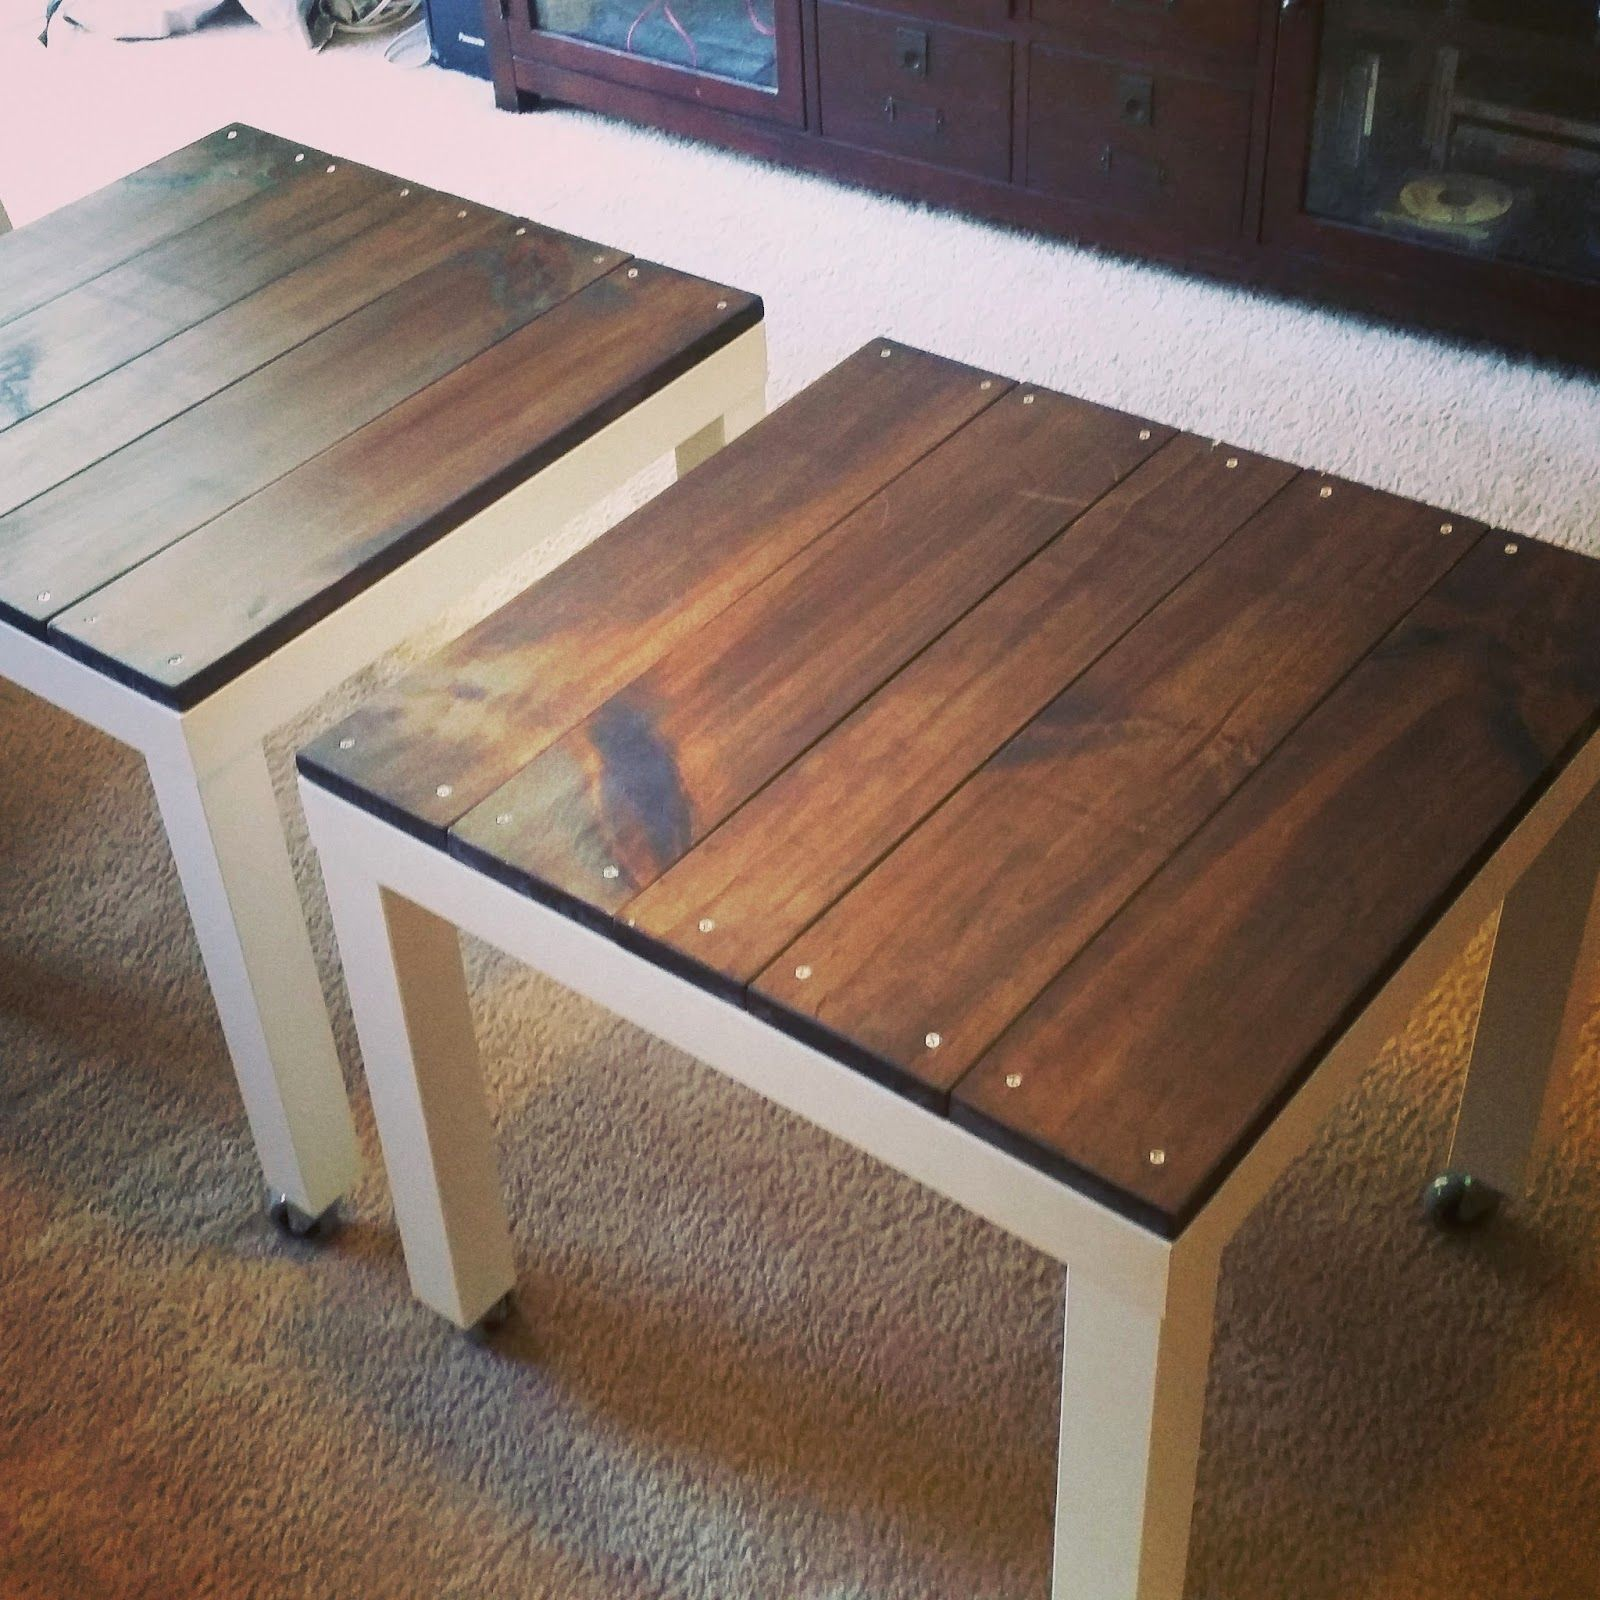 Ikea Coffee Table With Cubbies Download Ikea Lack Hack Add A Weathered Industrial Look To You Ikea Lack Table Furniture Hacks Ikea Diy [ 1600 x 1600 Pixel ]